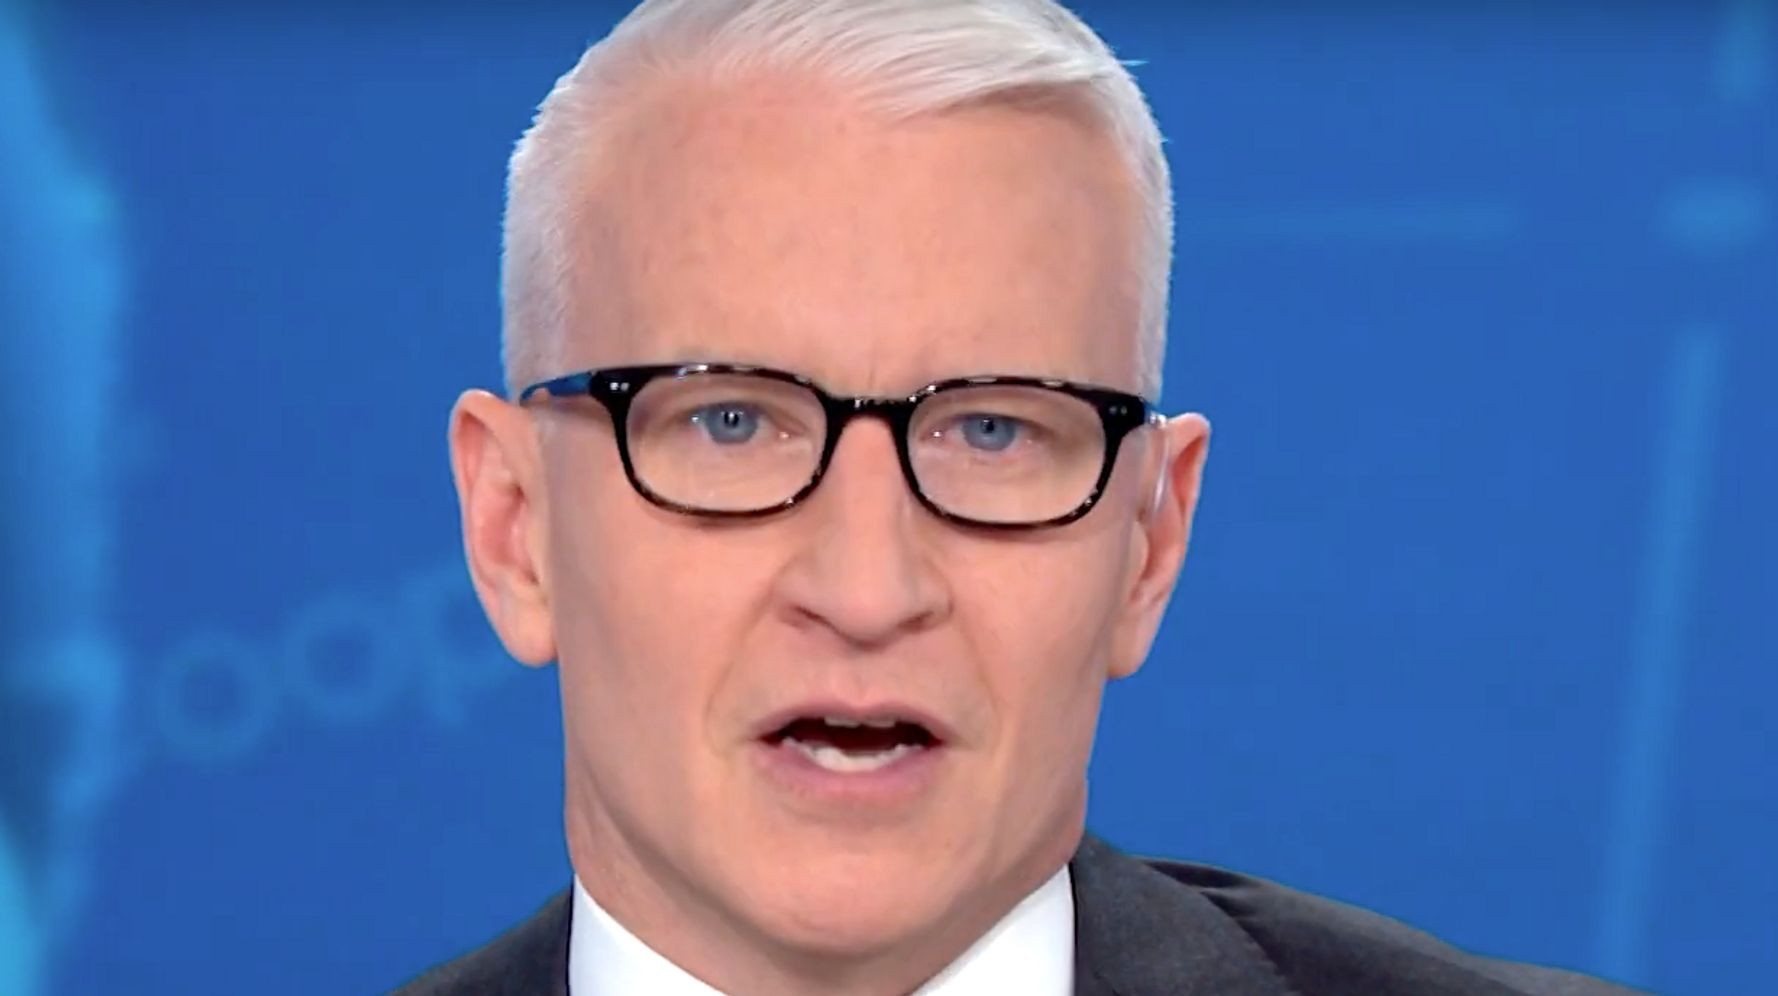 Westlake Legal Group 5daff87e210000ba1e34ac64 Anderson Cooper: Trump's Fate May Have Been Sealed On Tuesday